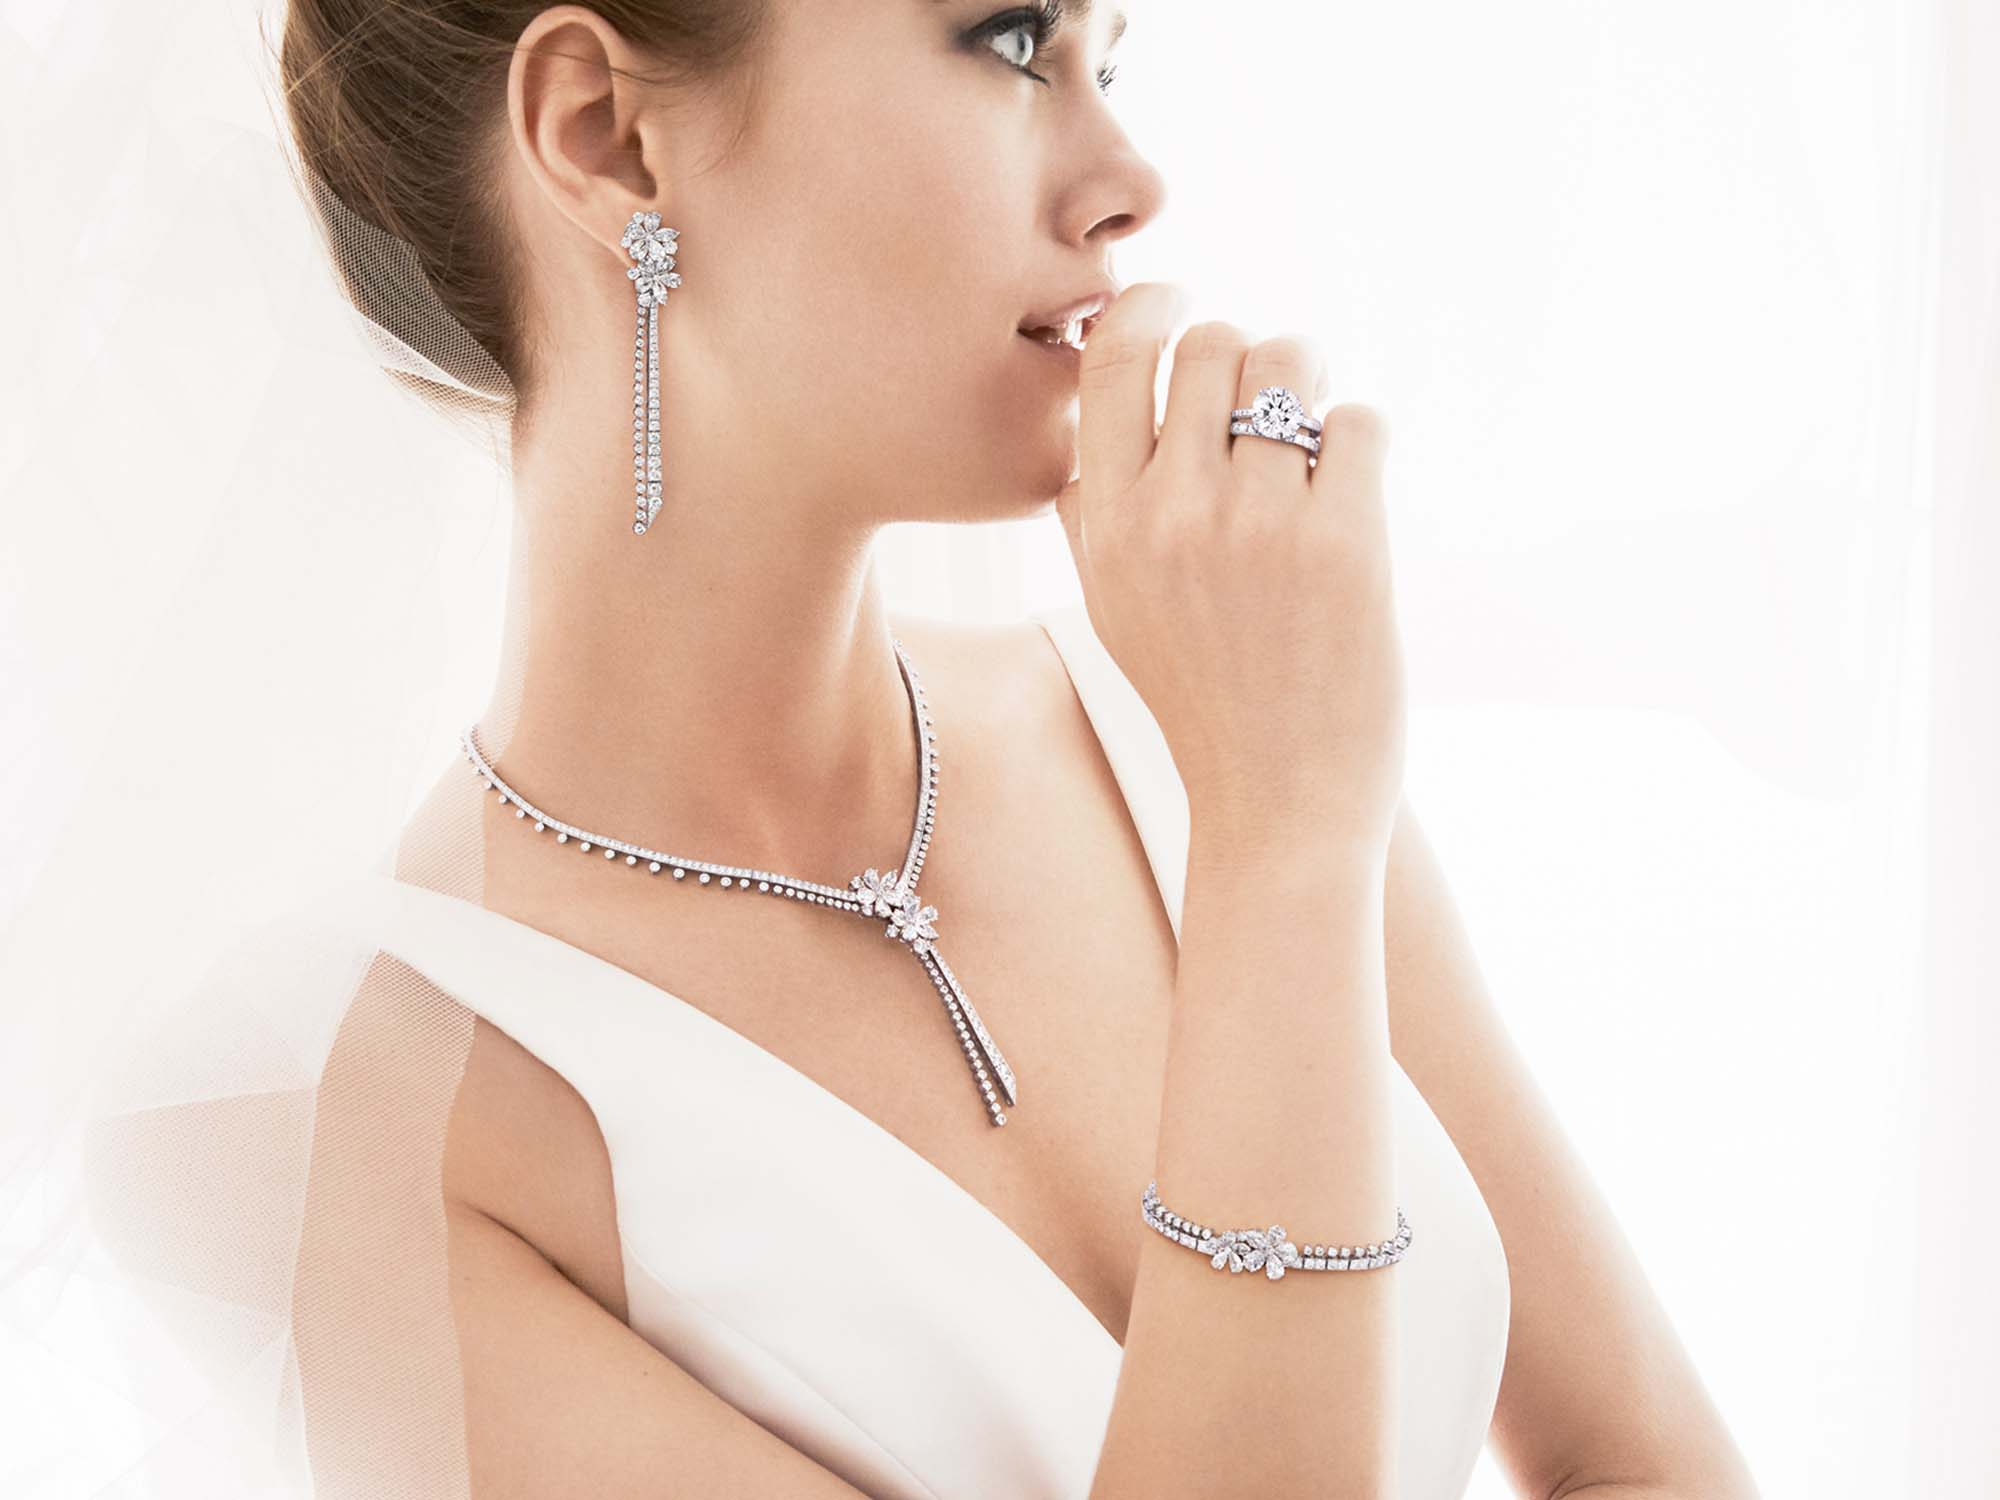 Model wears Graff Carissa Diamond Drop Earrings, Carissa Diamond Drop Necklace, Carissa Diamond Bracelet, Round Diamond Solitaire and Castle Set Round Diamond Wedding Band.